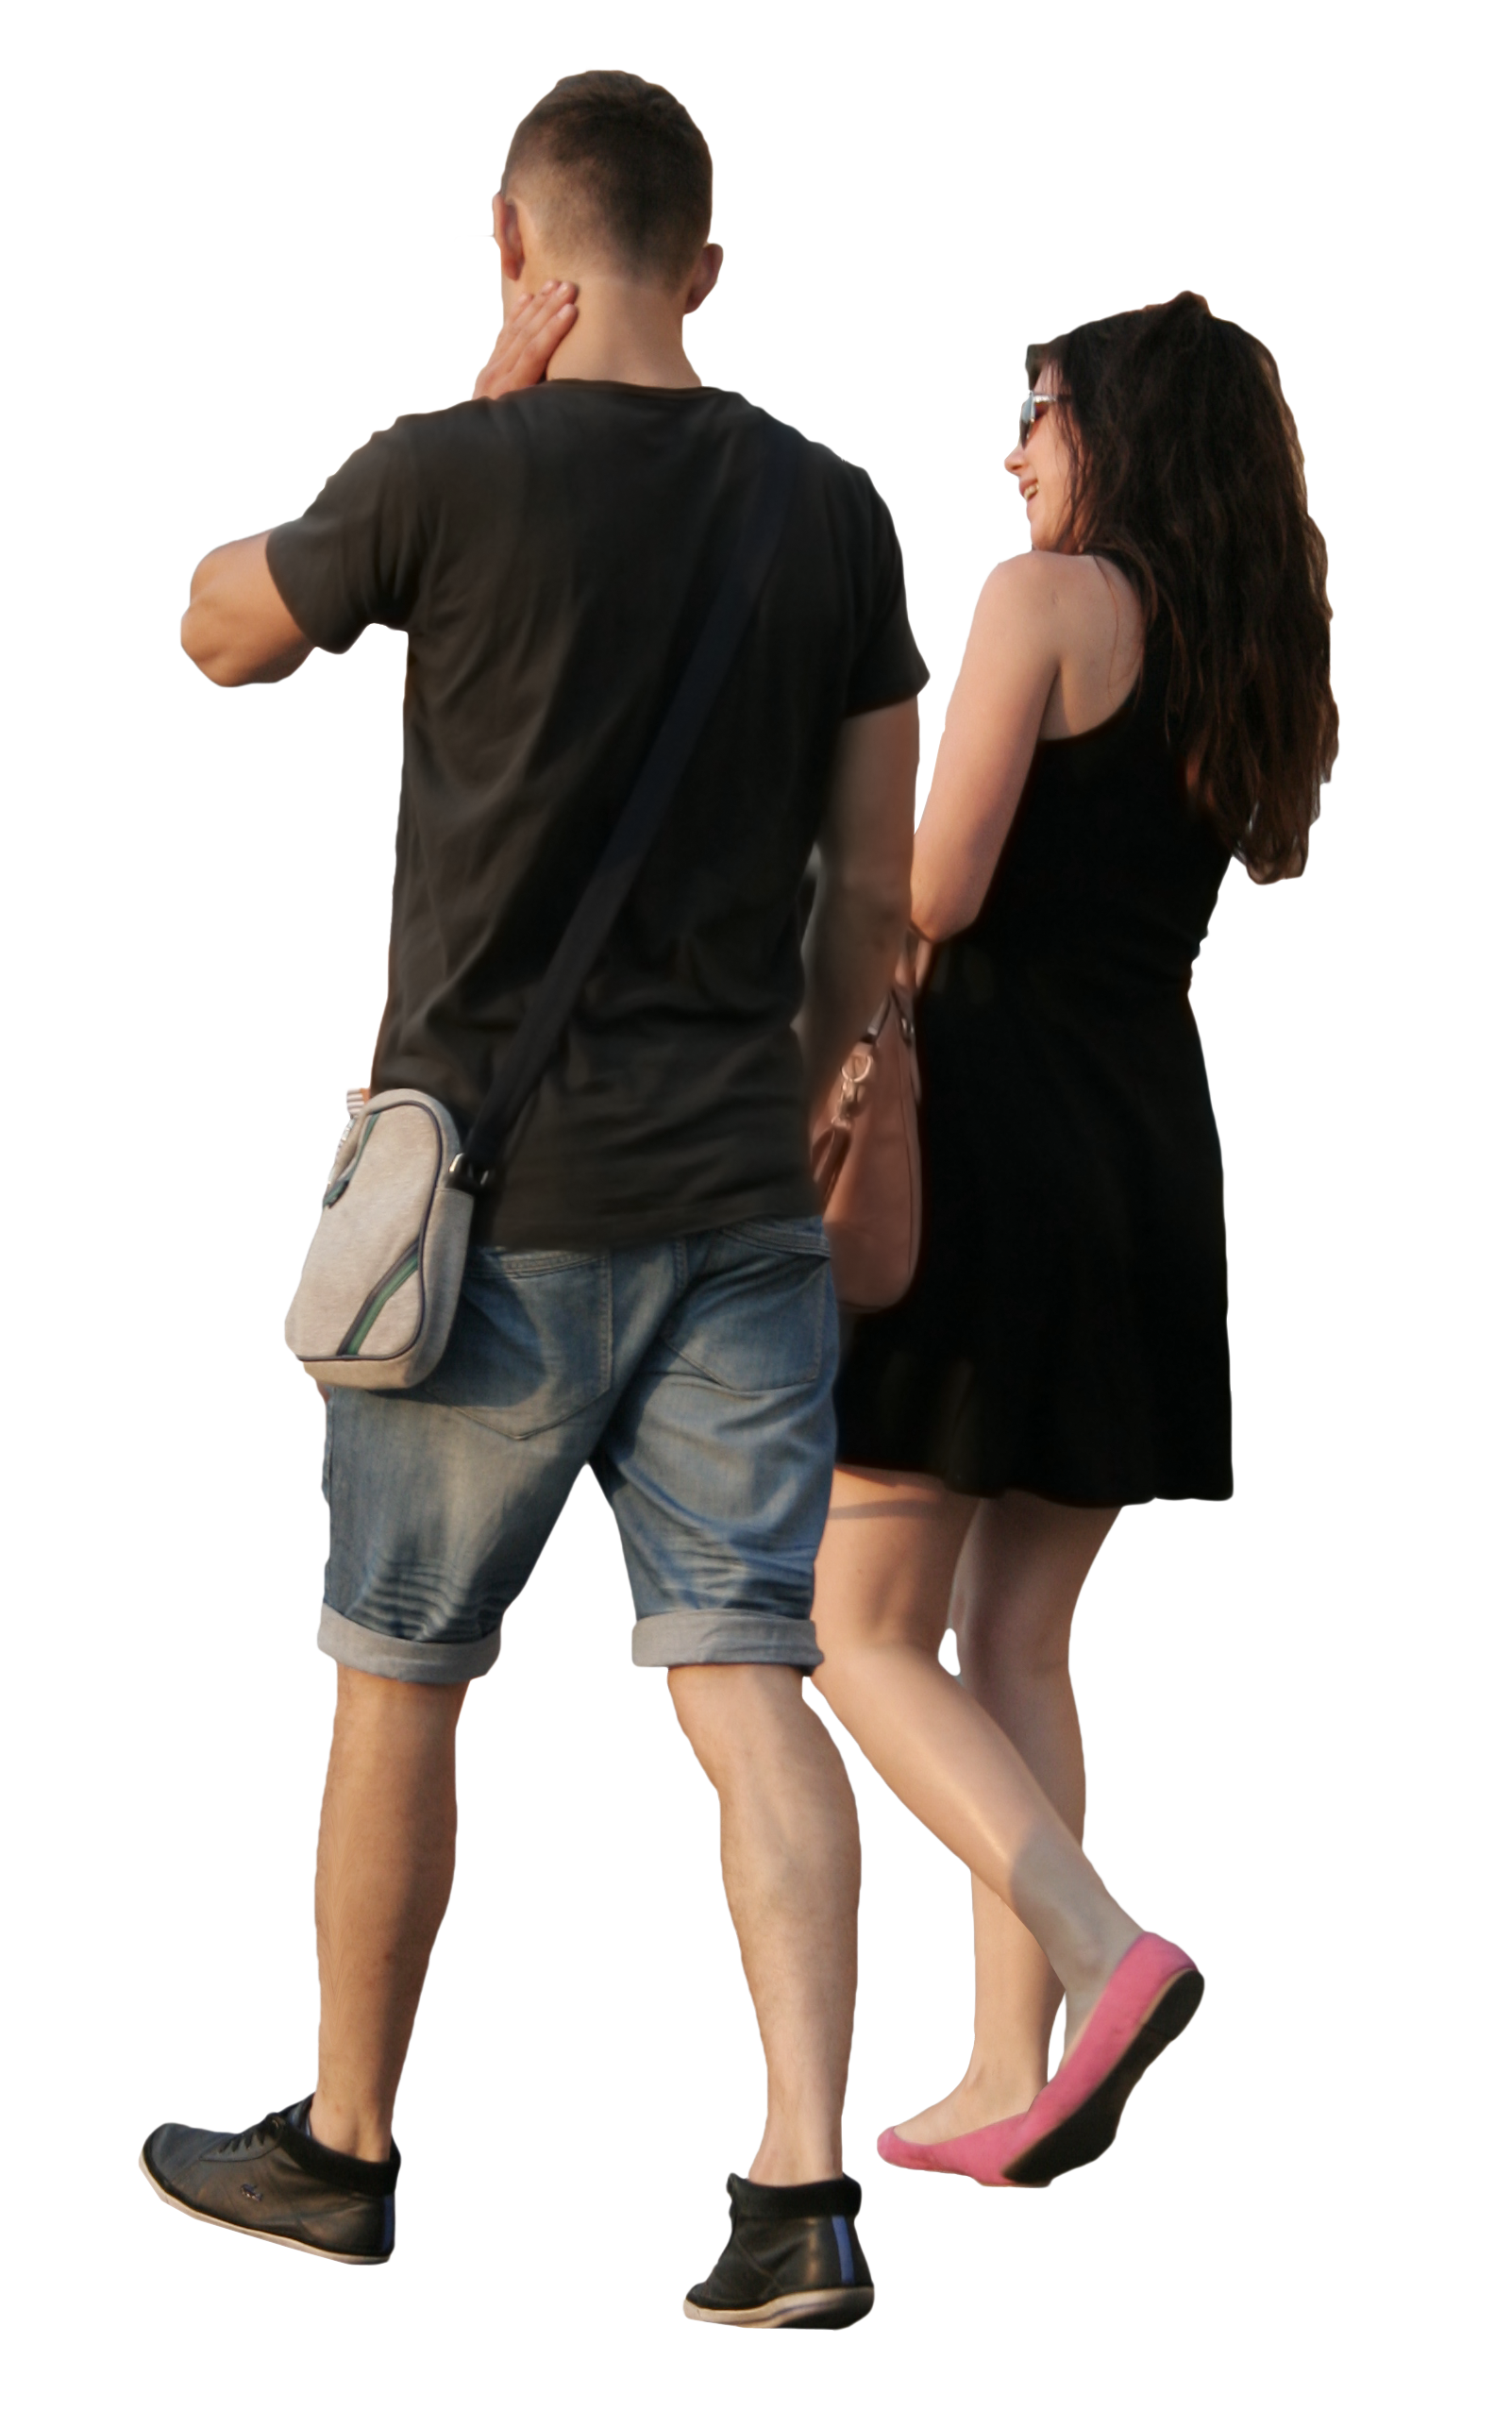 Couple clipart shopping. People png images transparent